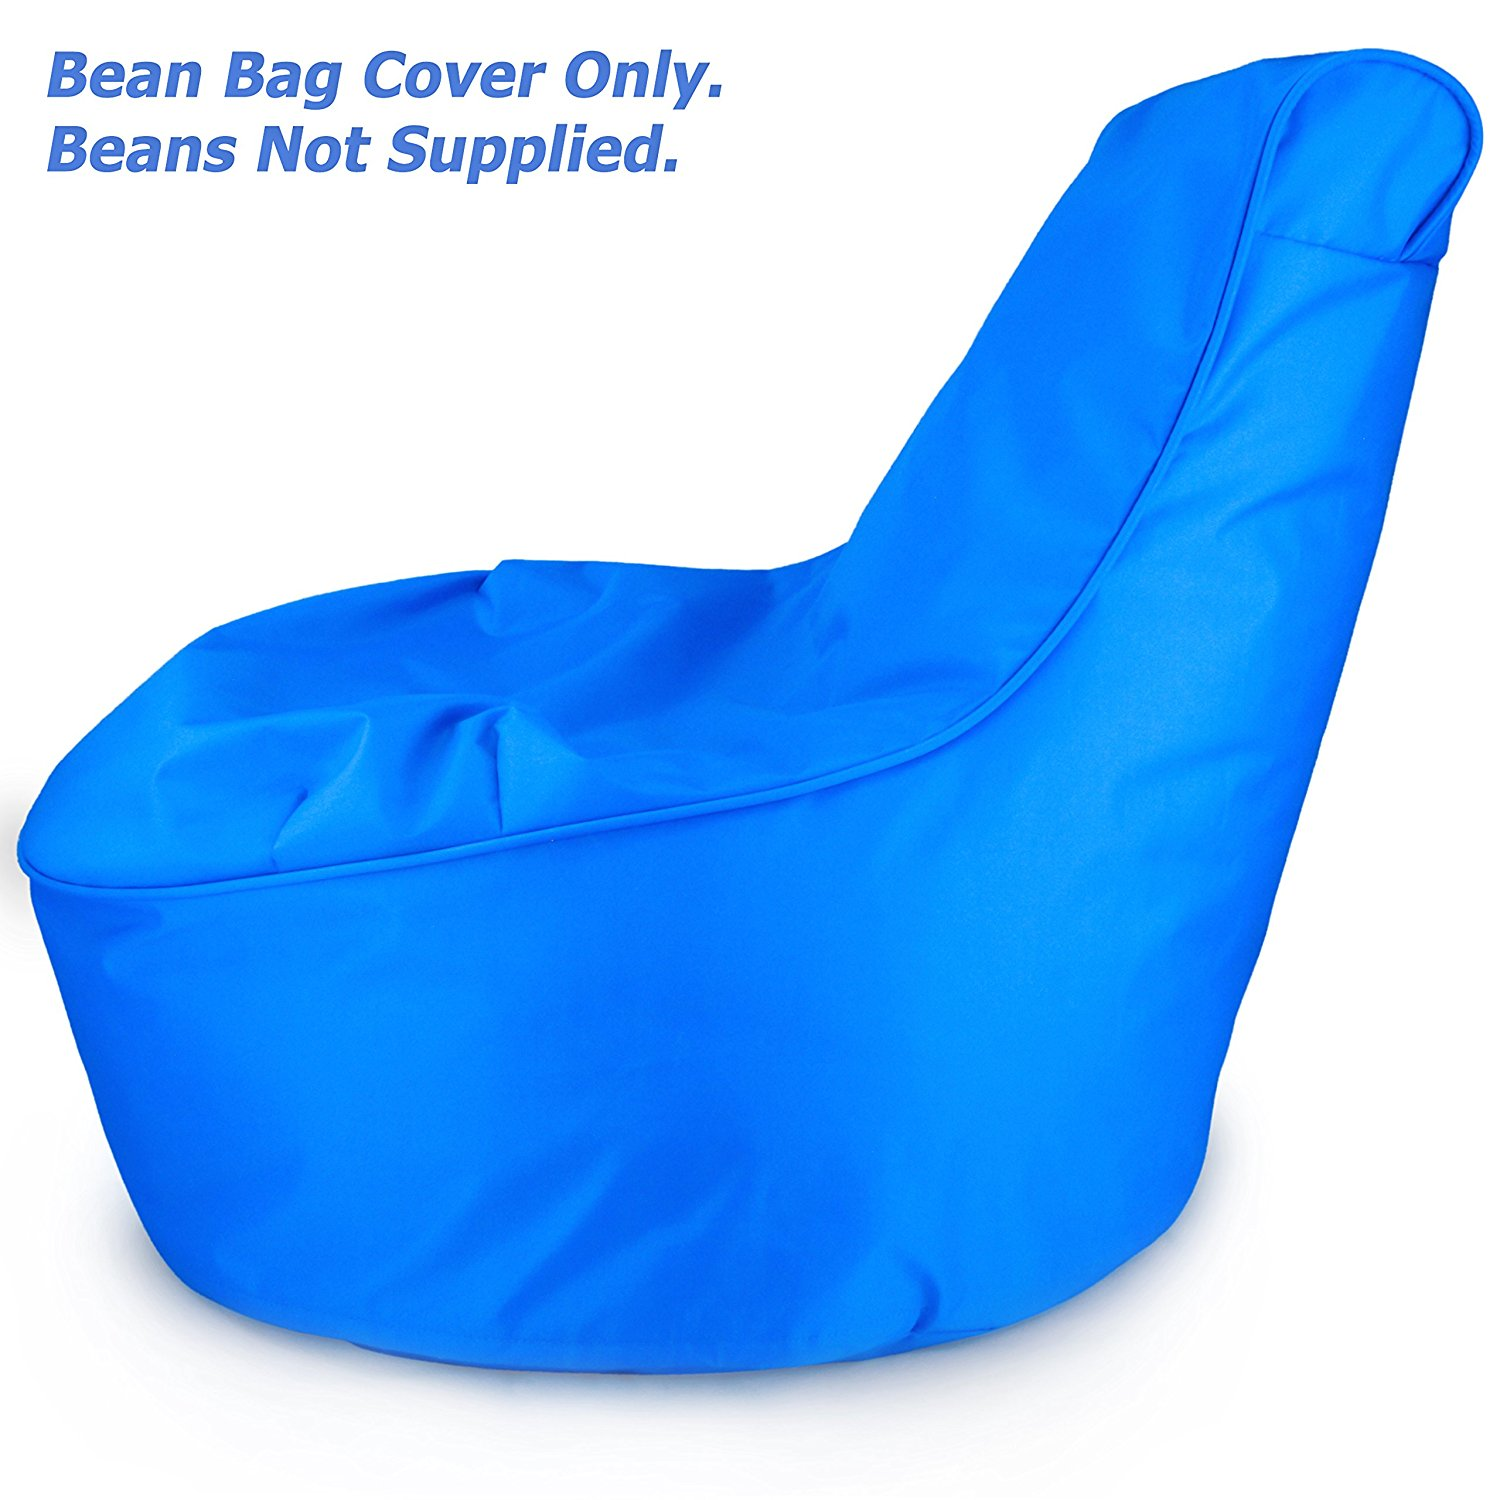 Bean Bag Chair Covers Only Comfy Kids Bean Bag Chair Cover Only Electric Blue Stain Resistant Tough Waterproof Material Space Saving Bean Bag Chair For Kids Perfect Bean